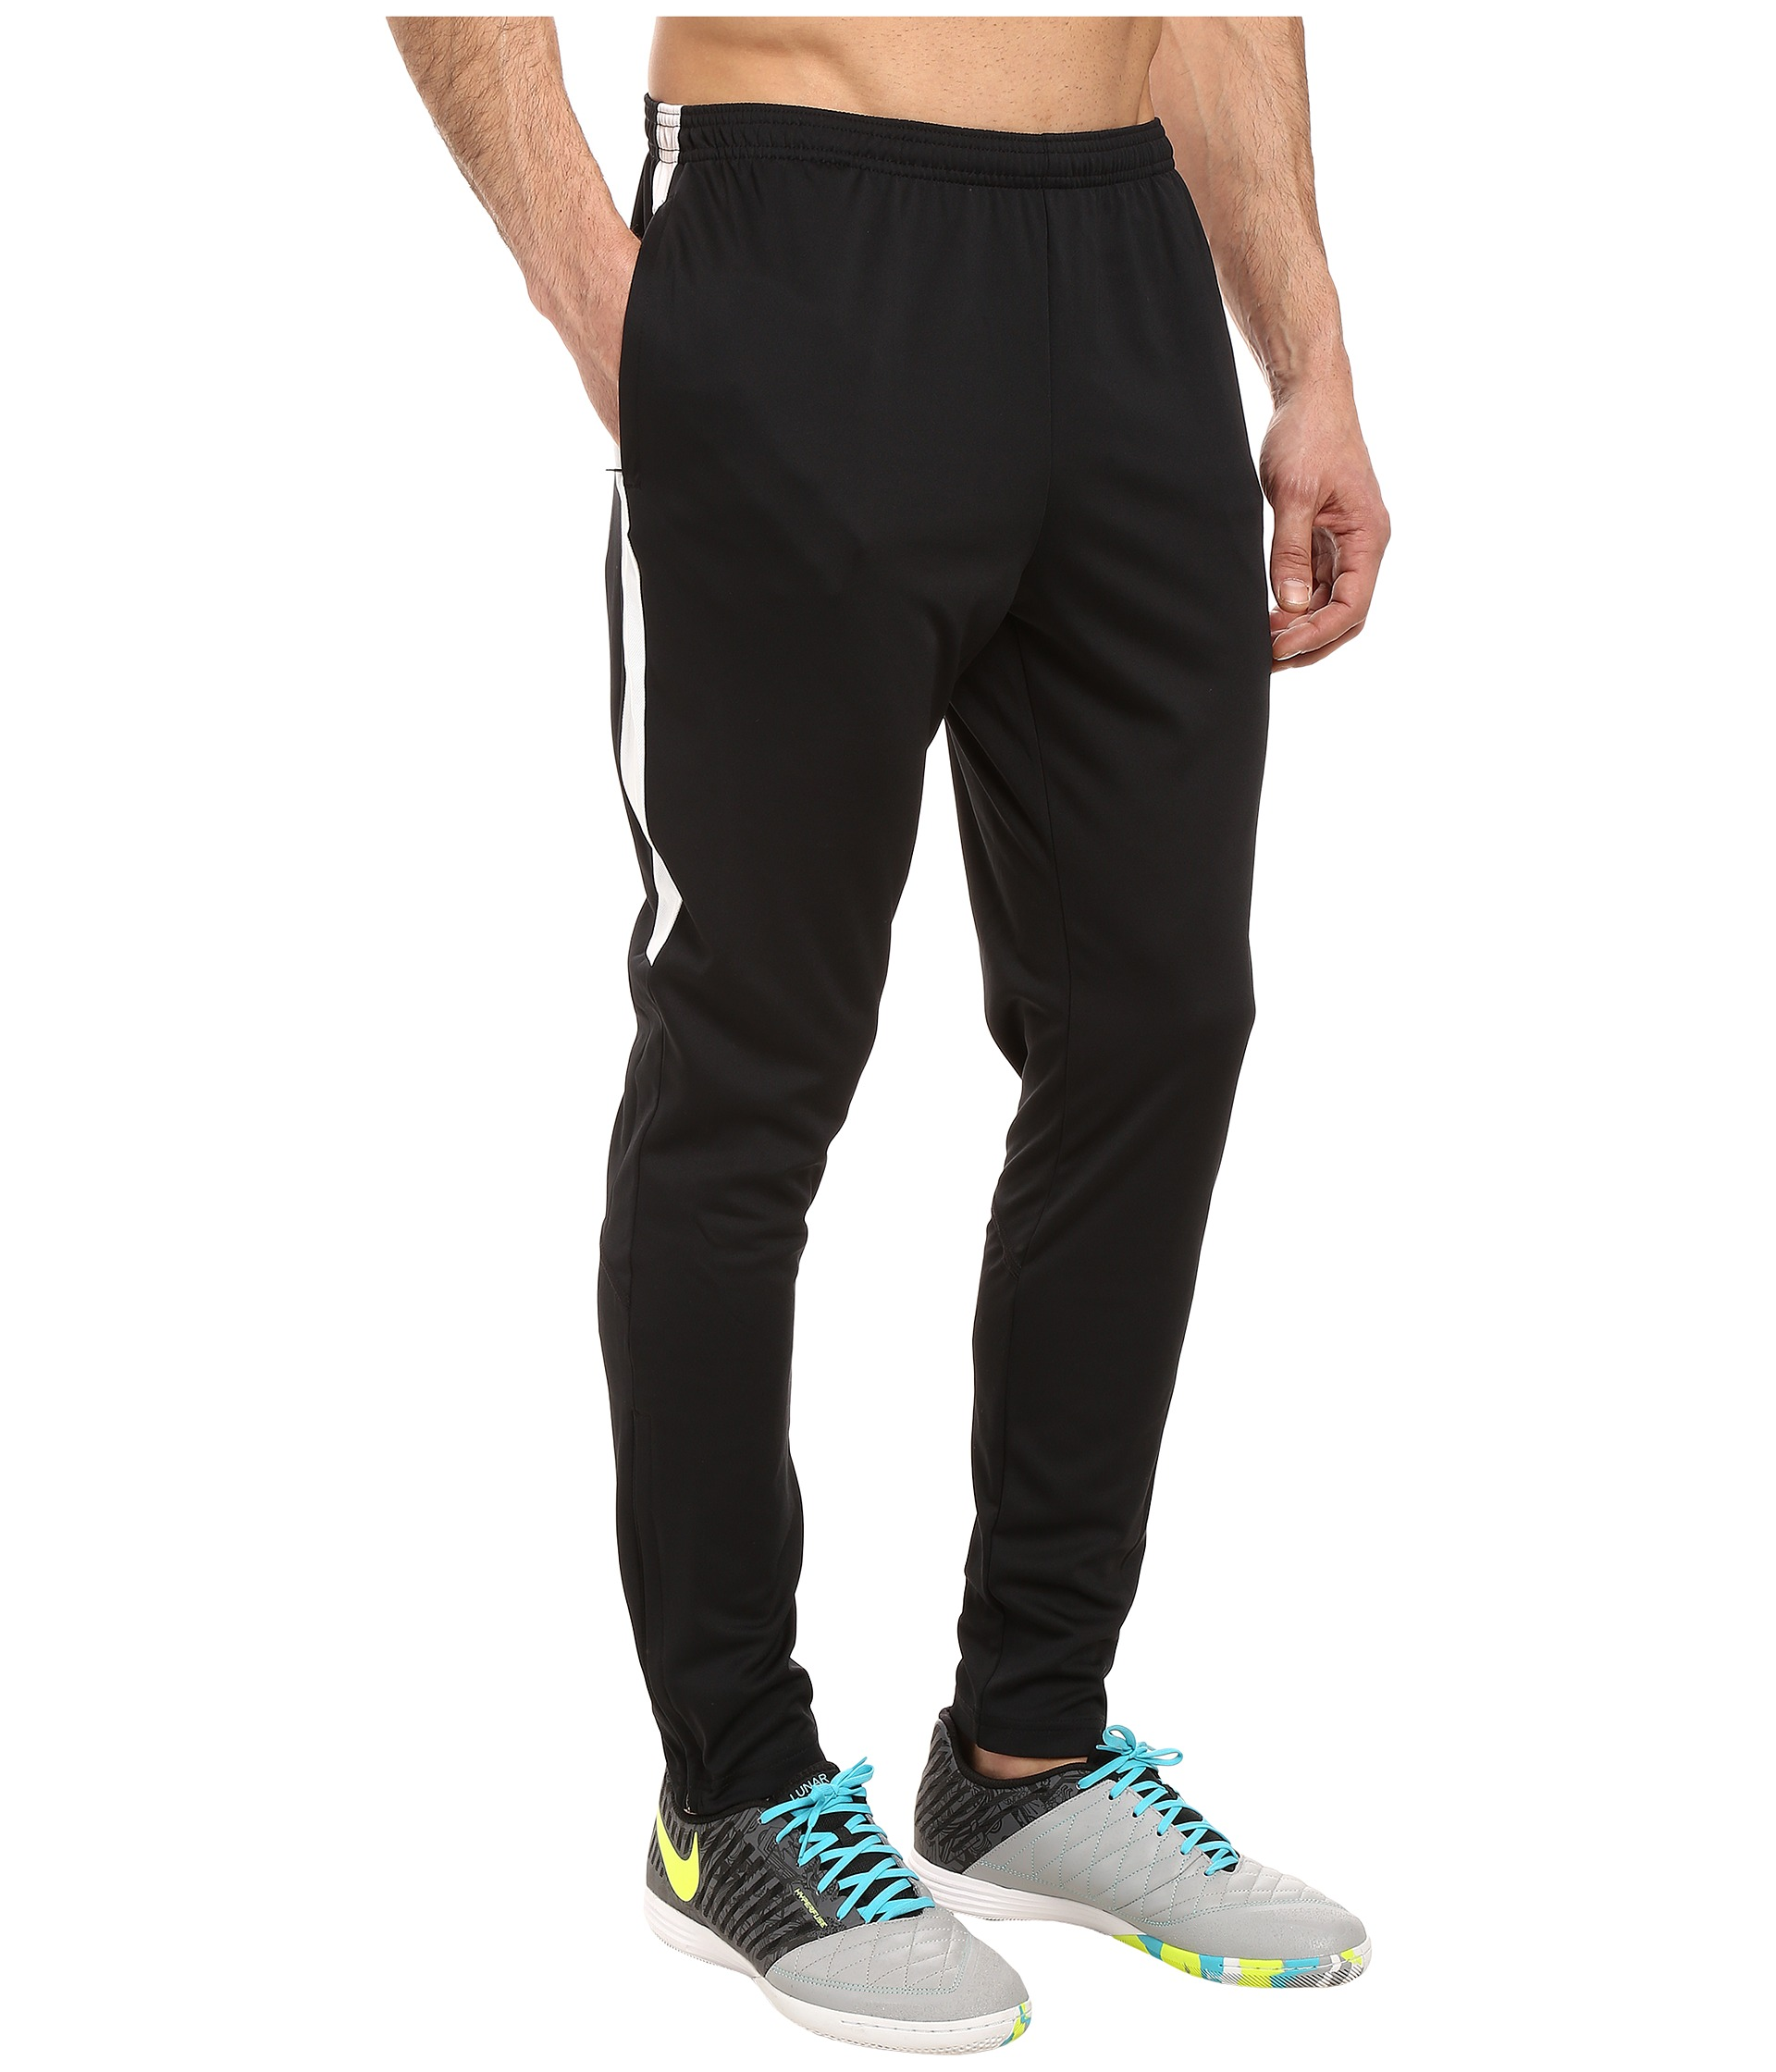 Nike Dry Academy Soccer Pant at Zappos.com